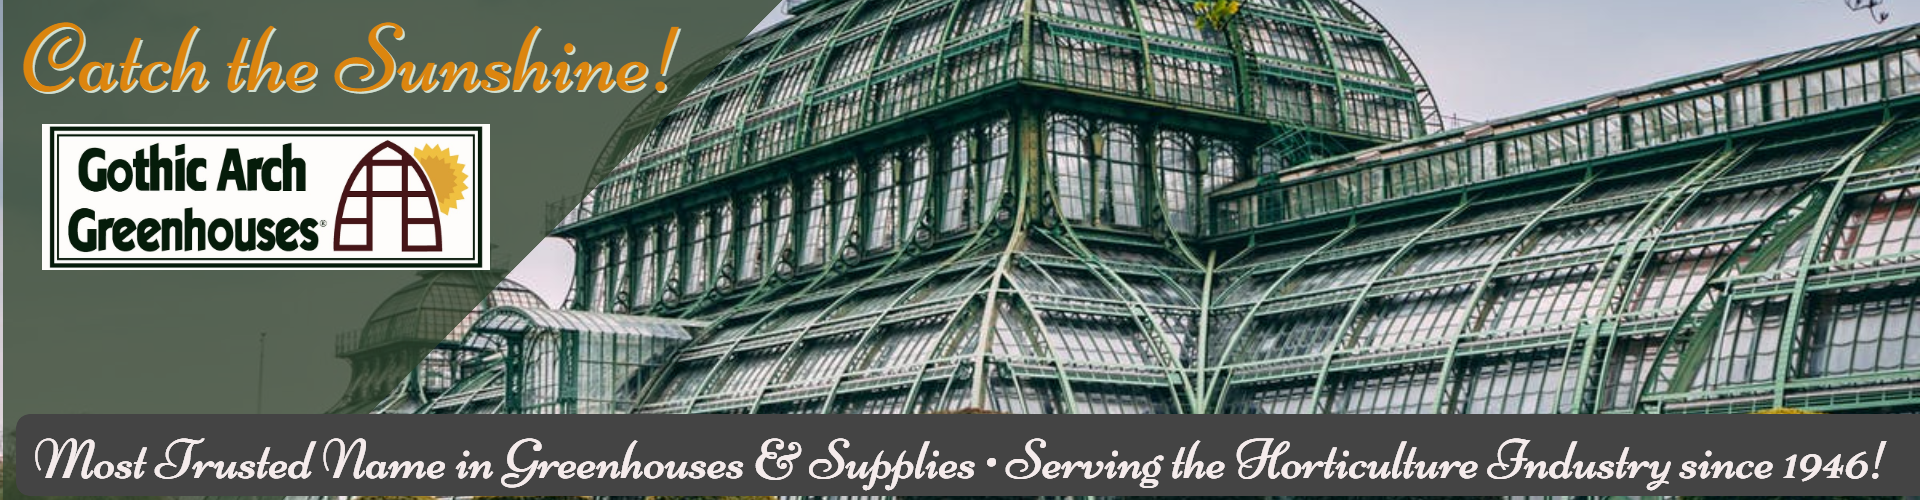 Gothic Arch Greenhouses – Blog